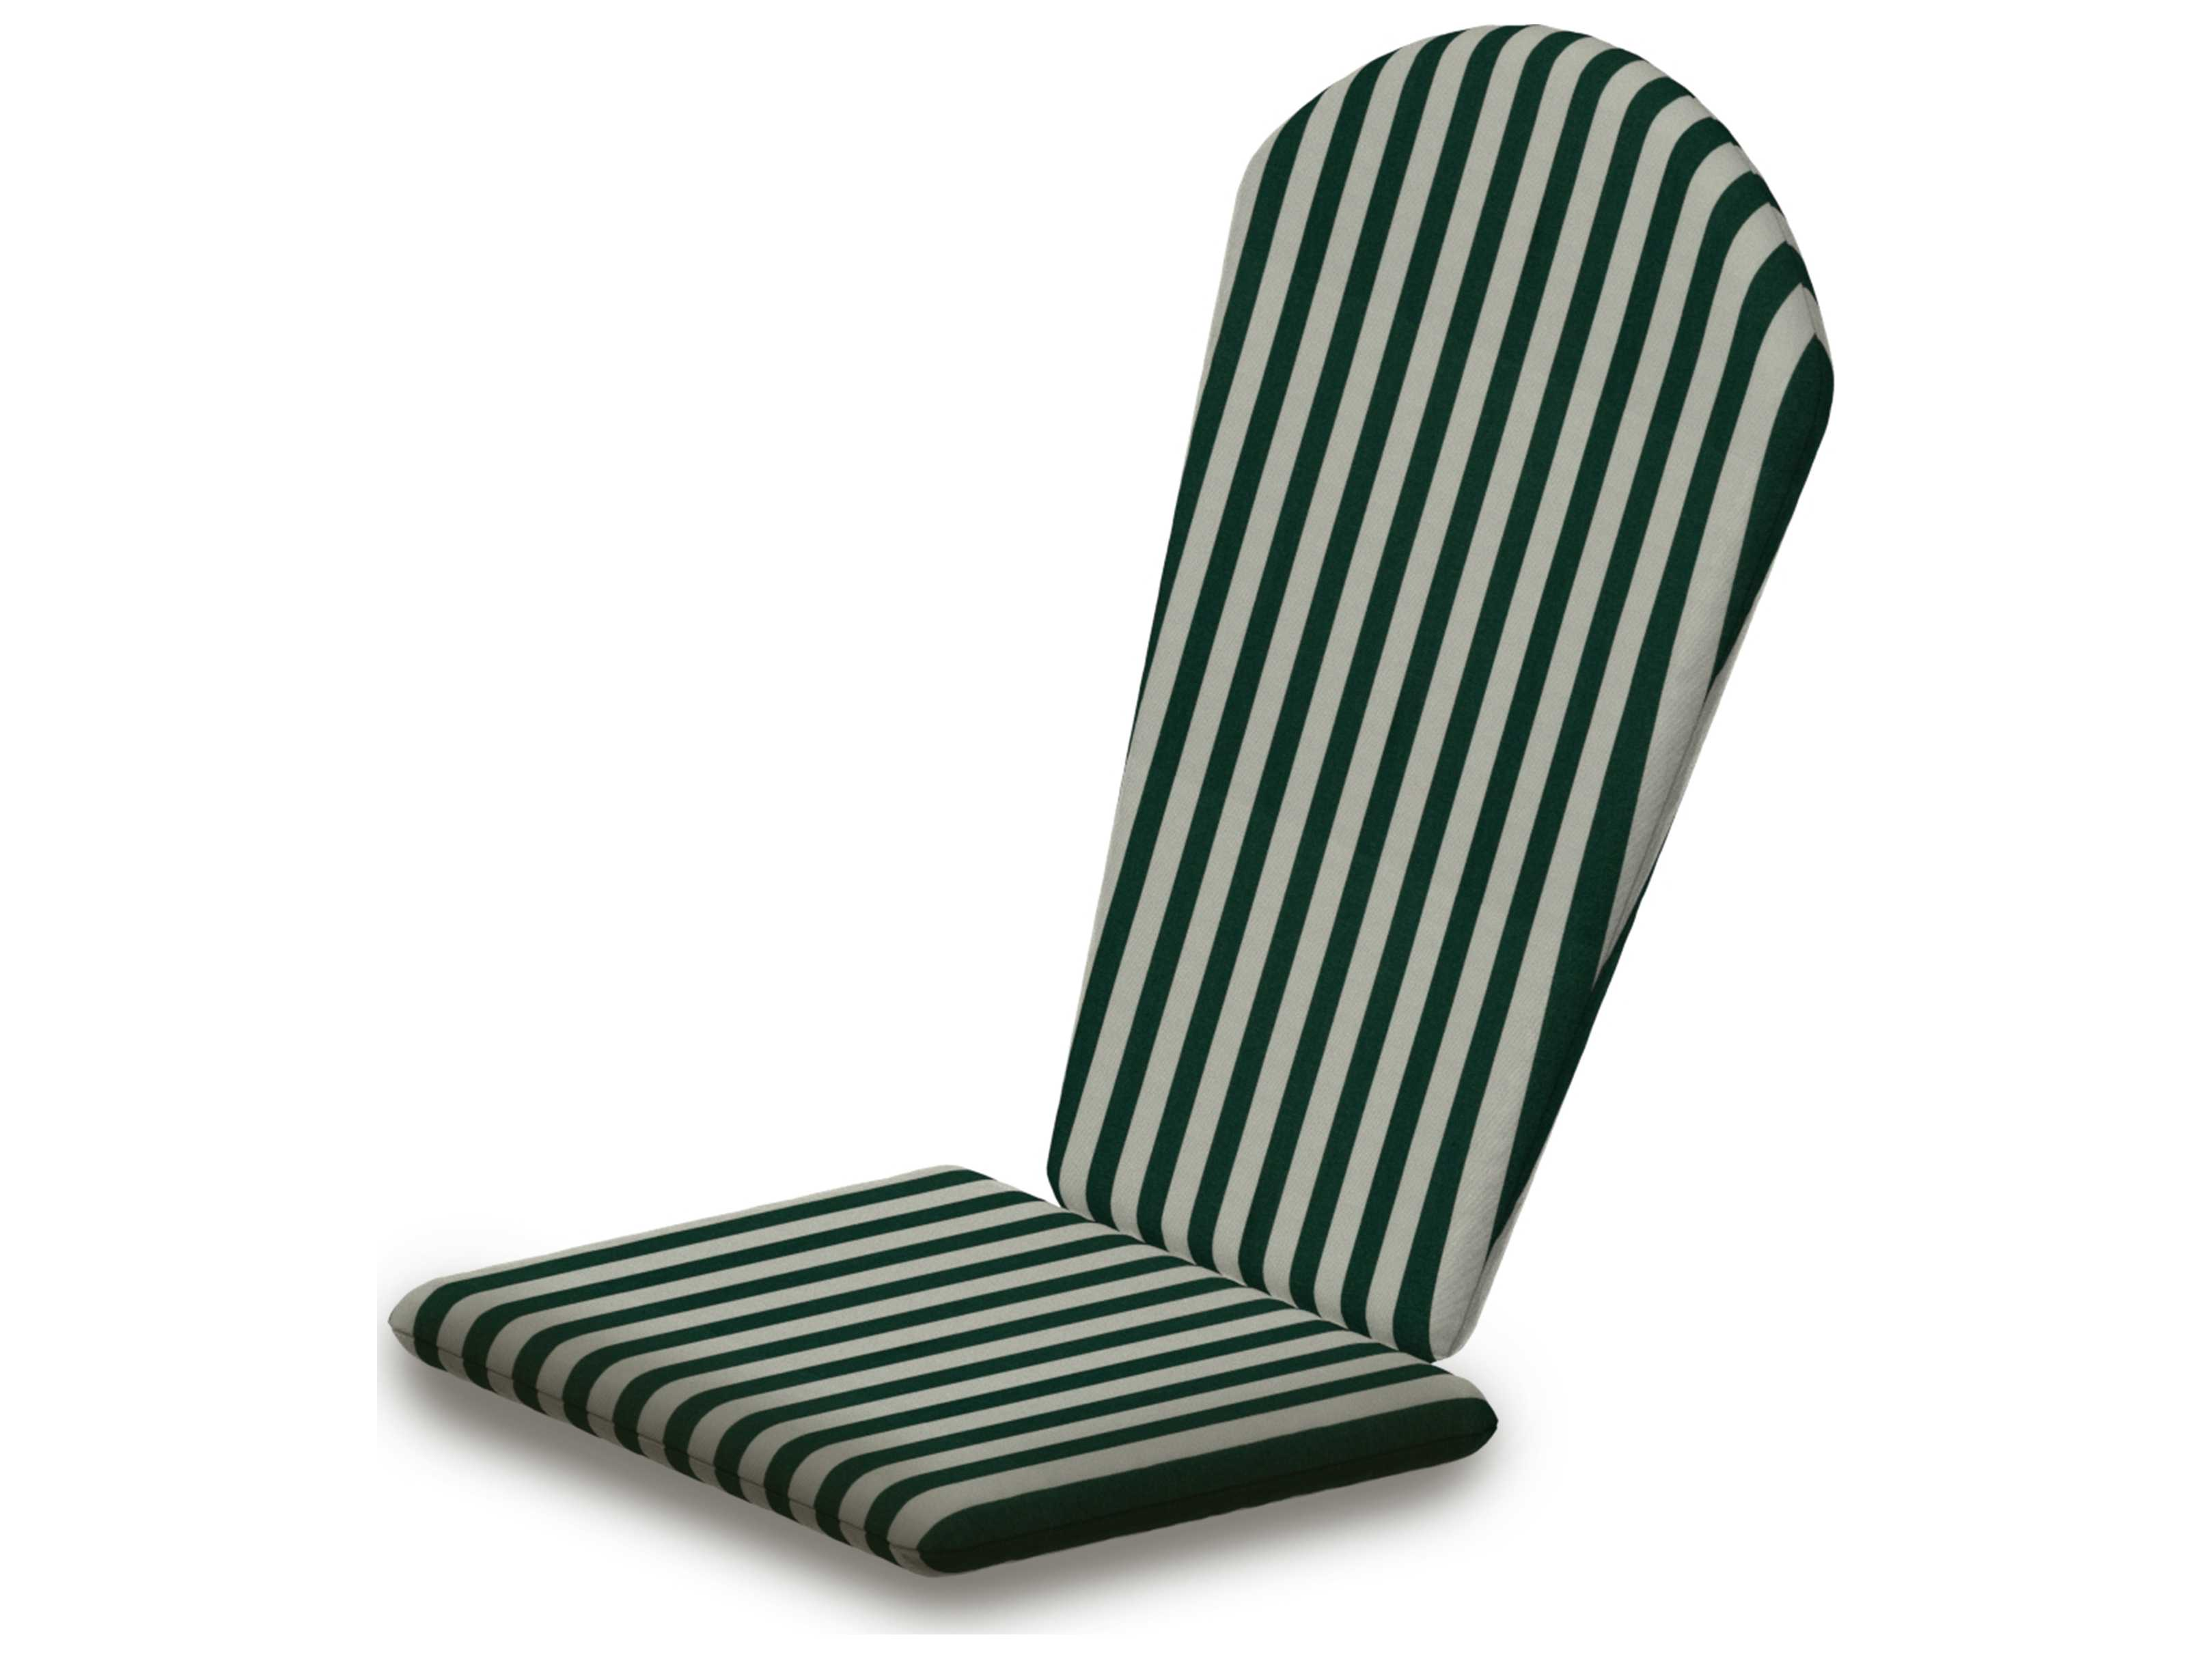 Polywood 174 Rocker Replacement Chair Seat Amp Back Cushion